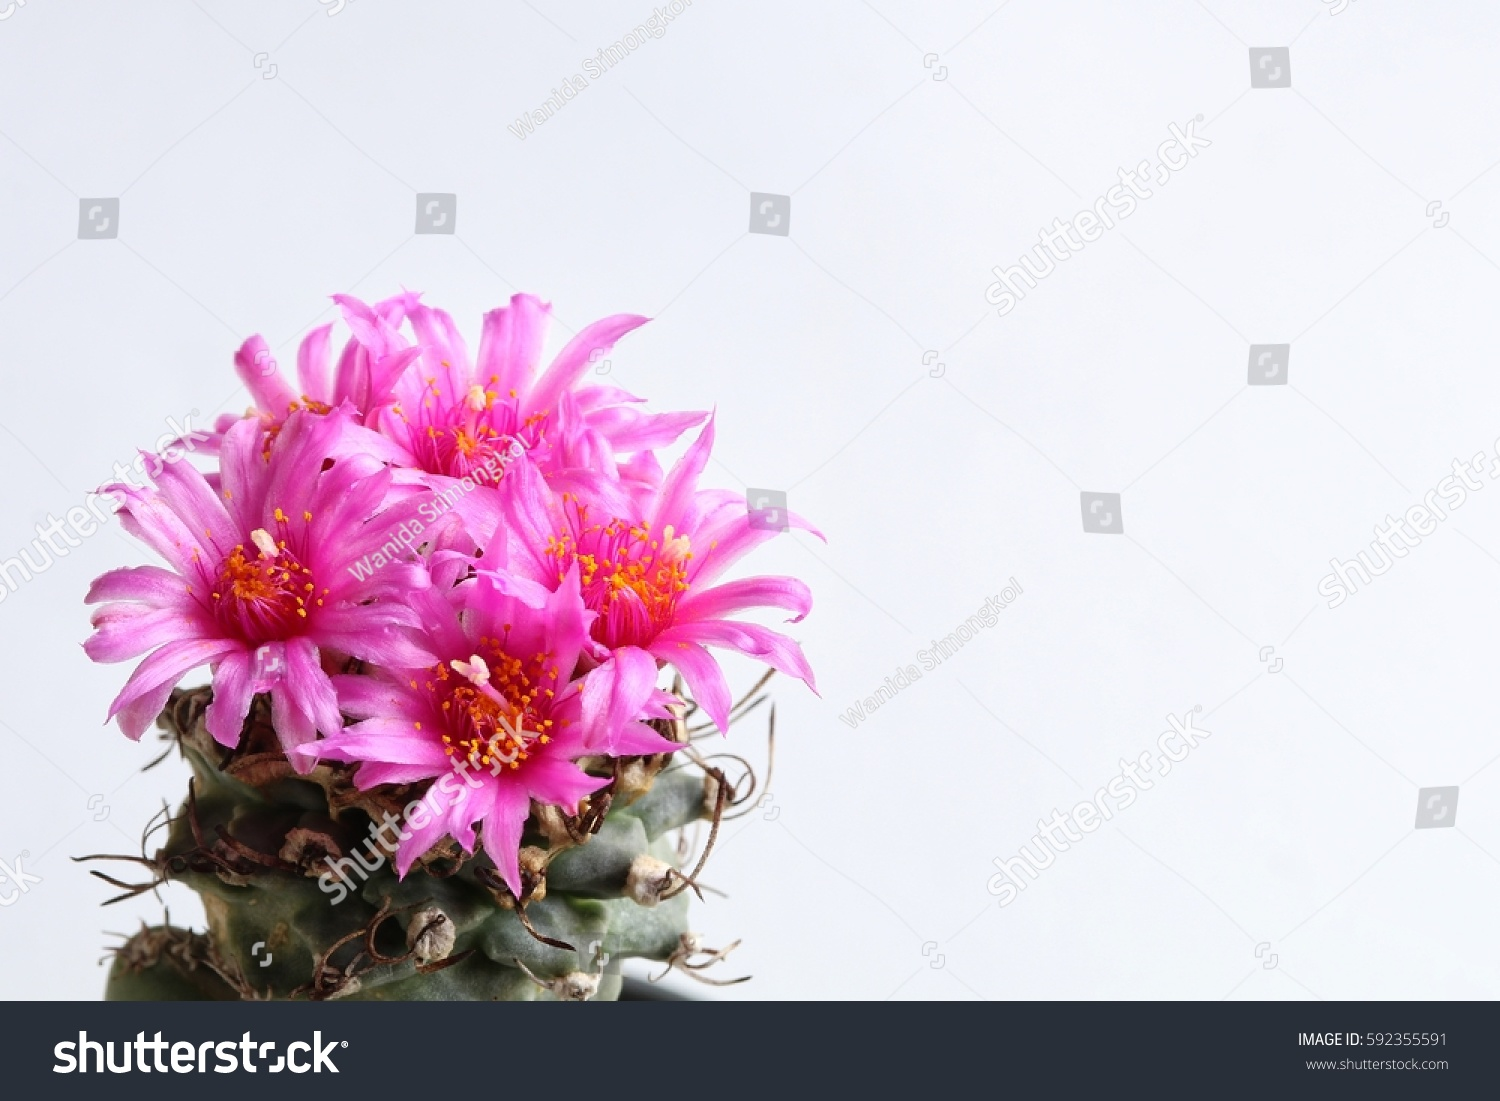 Bouquet Pink Cactus Flower Species Turbinicarpus Stock Photo ...